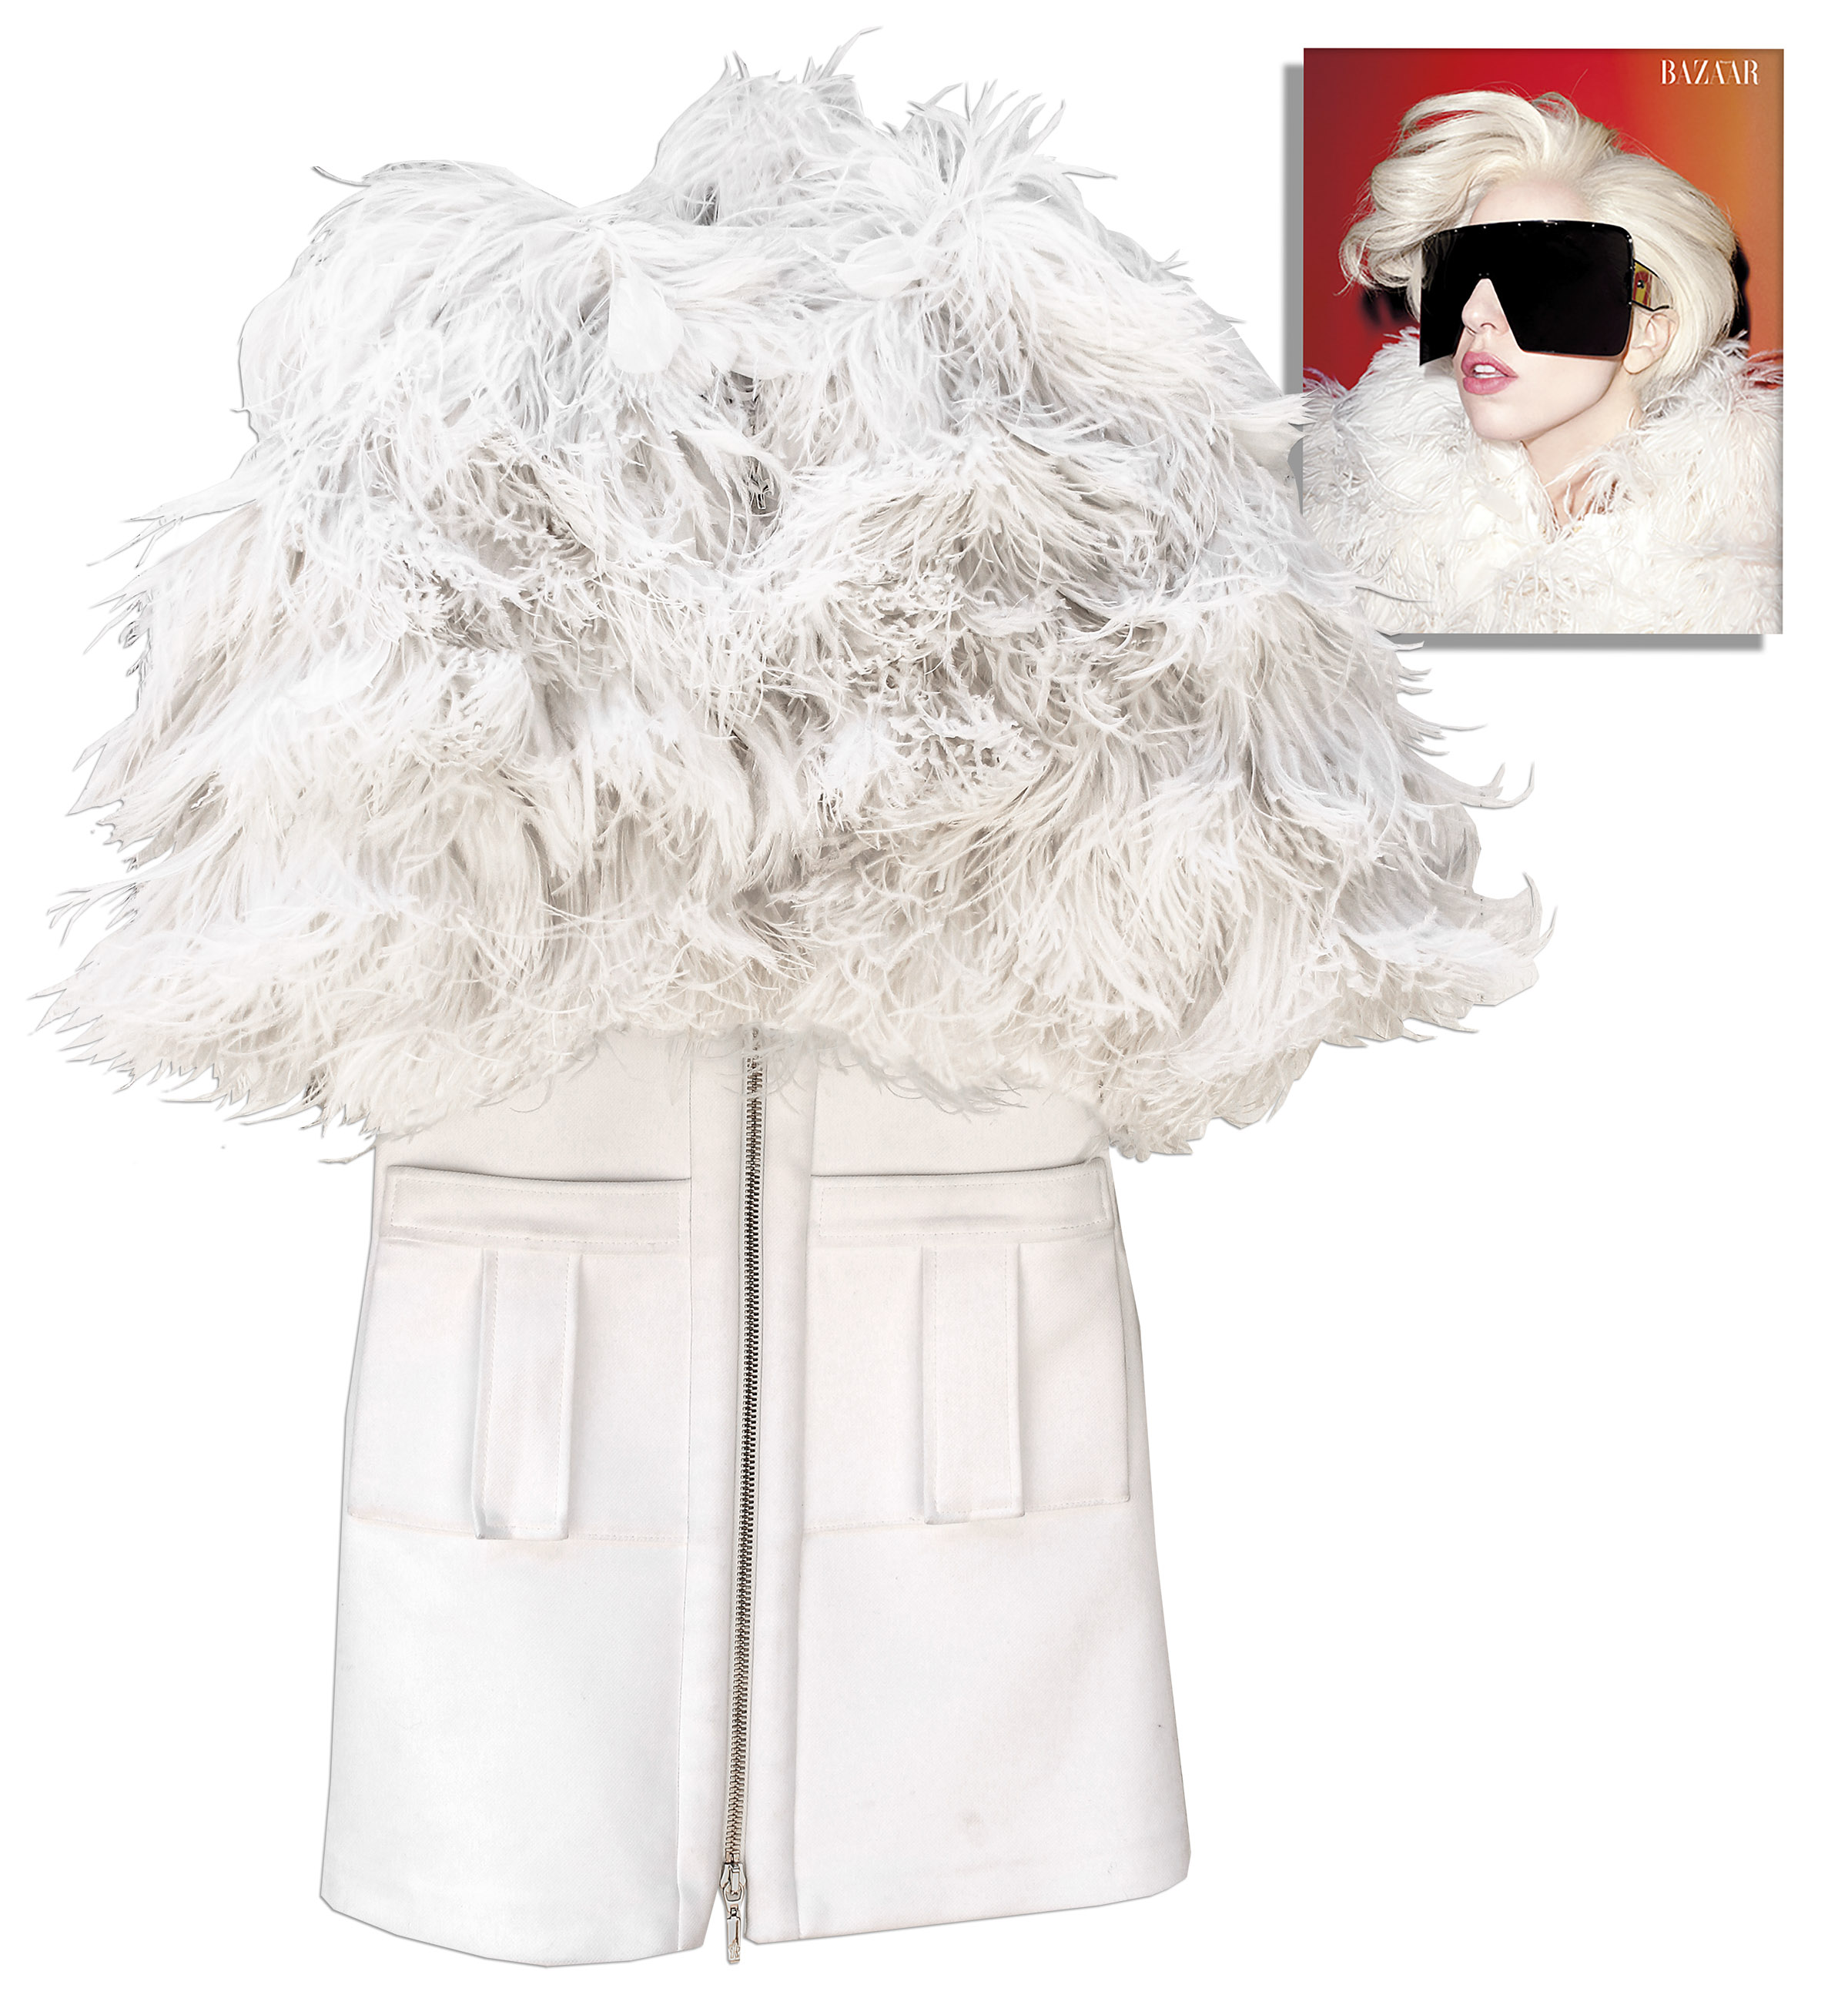 Lady Gaga costume Lady Gaga Worn Moncler Gamme Rouge Jacket From ''Harper's Bazaar'' Cover Shoot